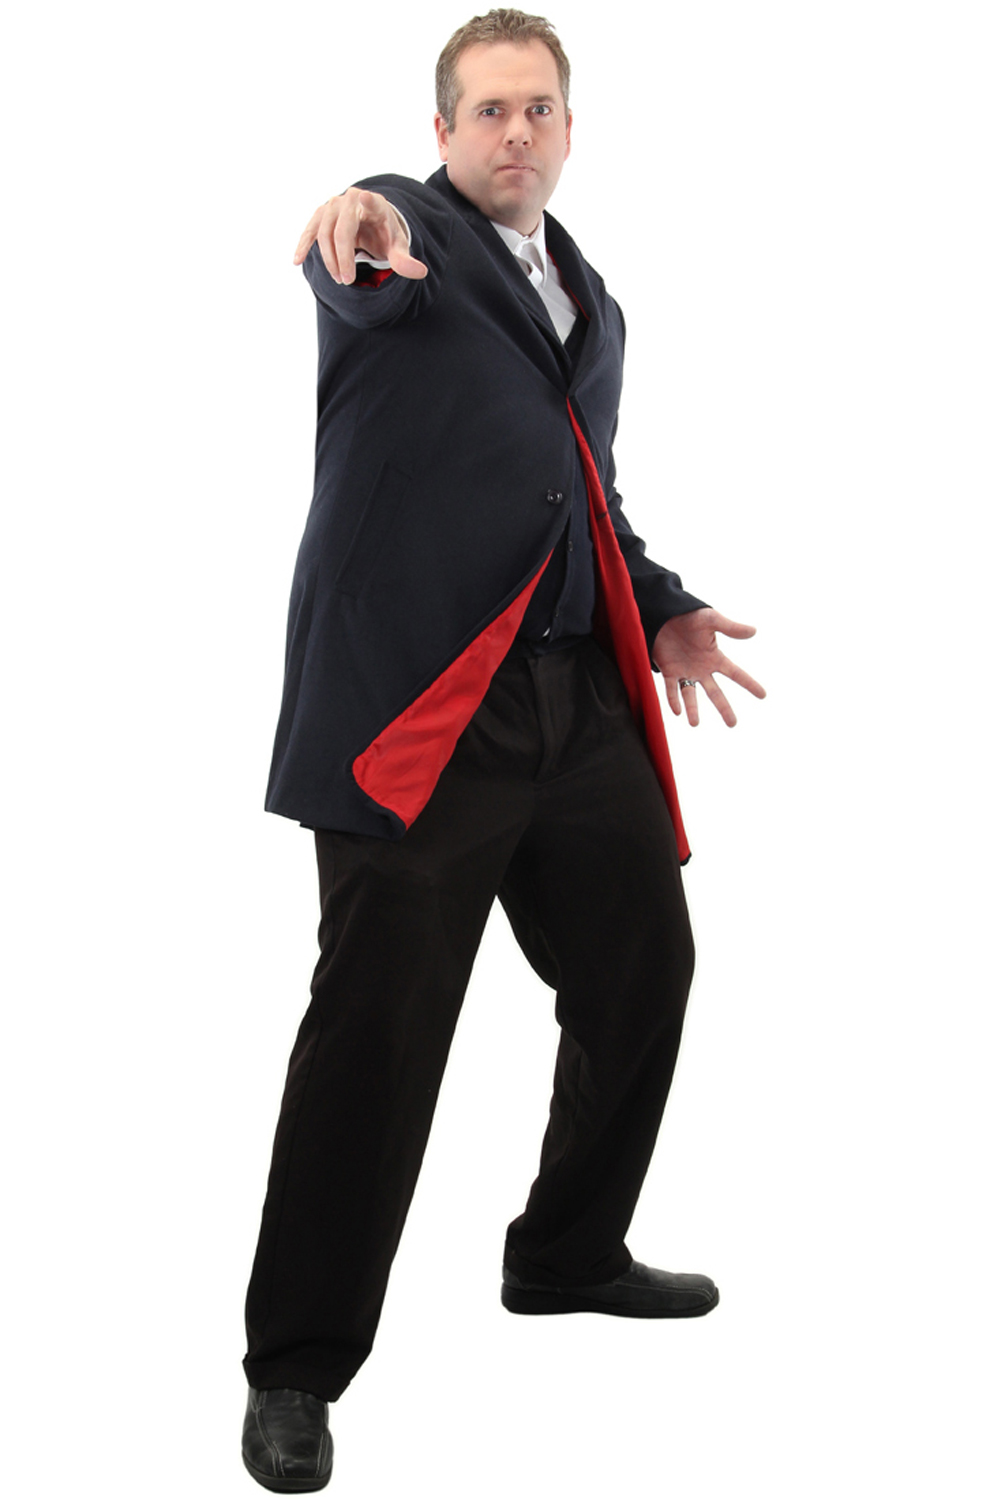 Doctor Who 12th Doctor Plus Size Costume (2XL ...  Doctor Who 12th...